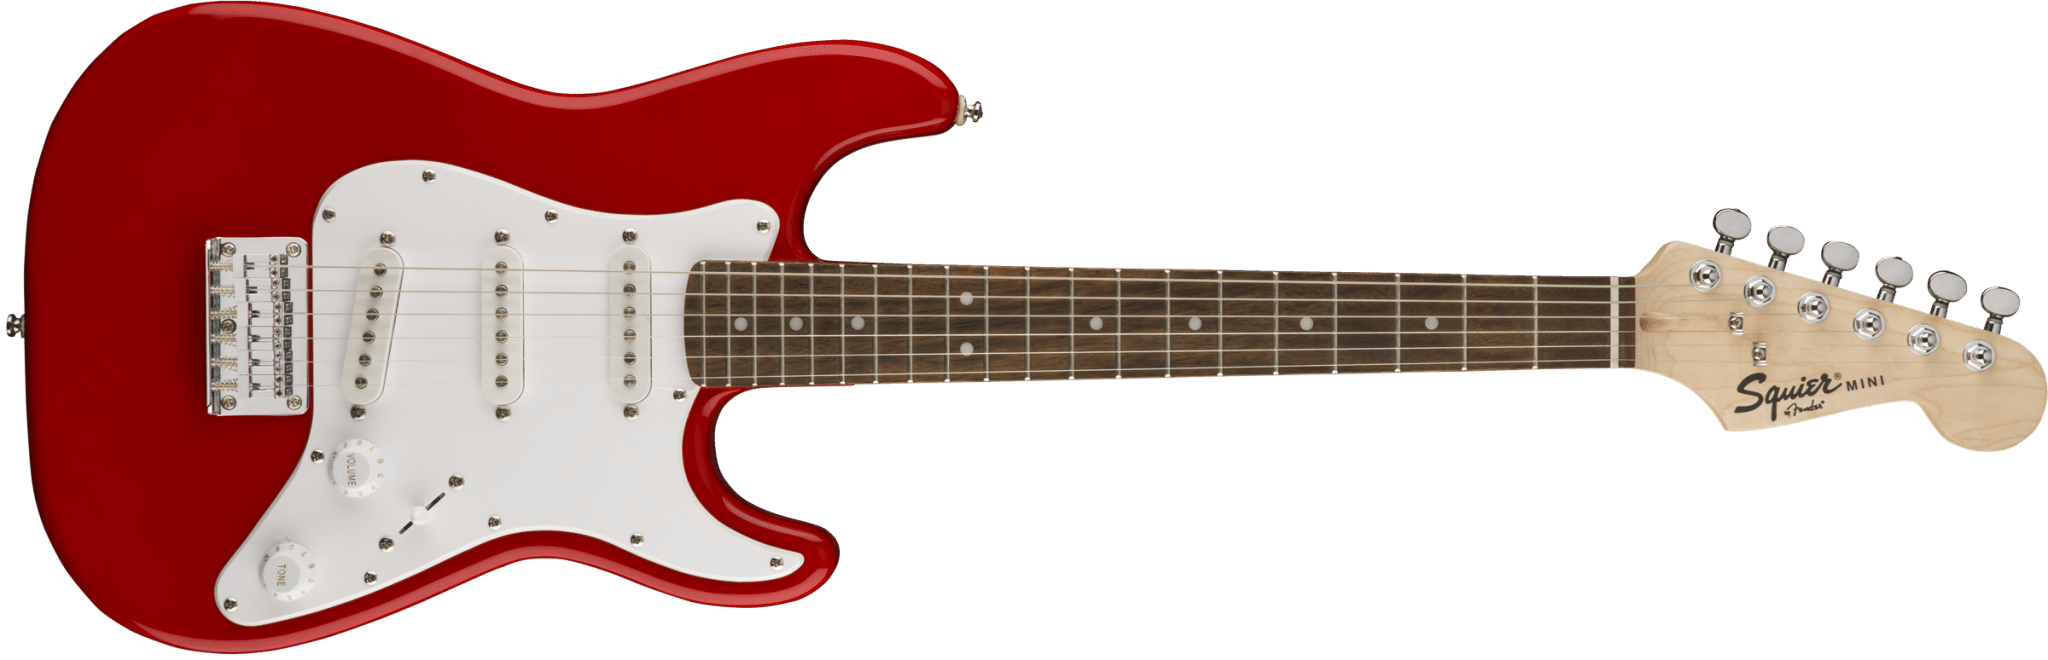 Squier Mini Strat Torino Red Electric Guitar Eastgate Music